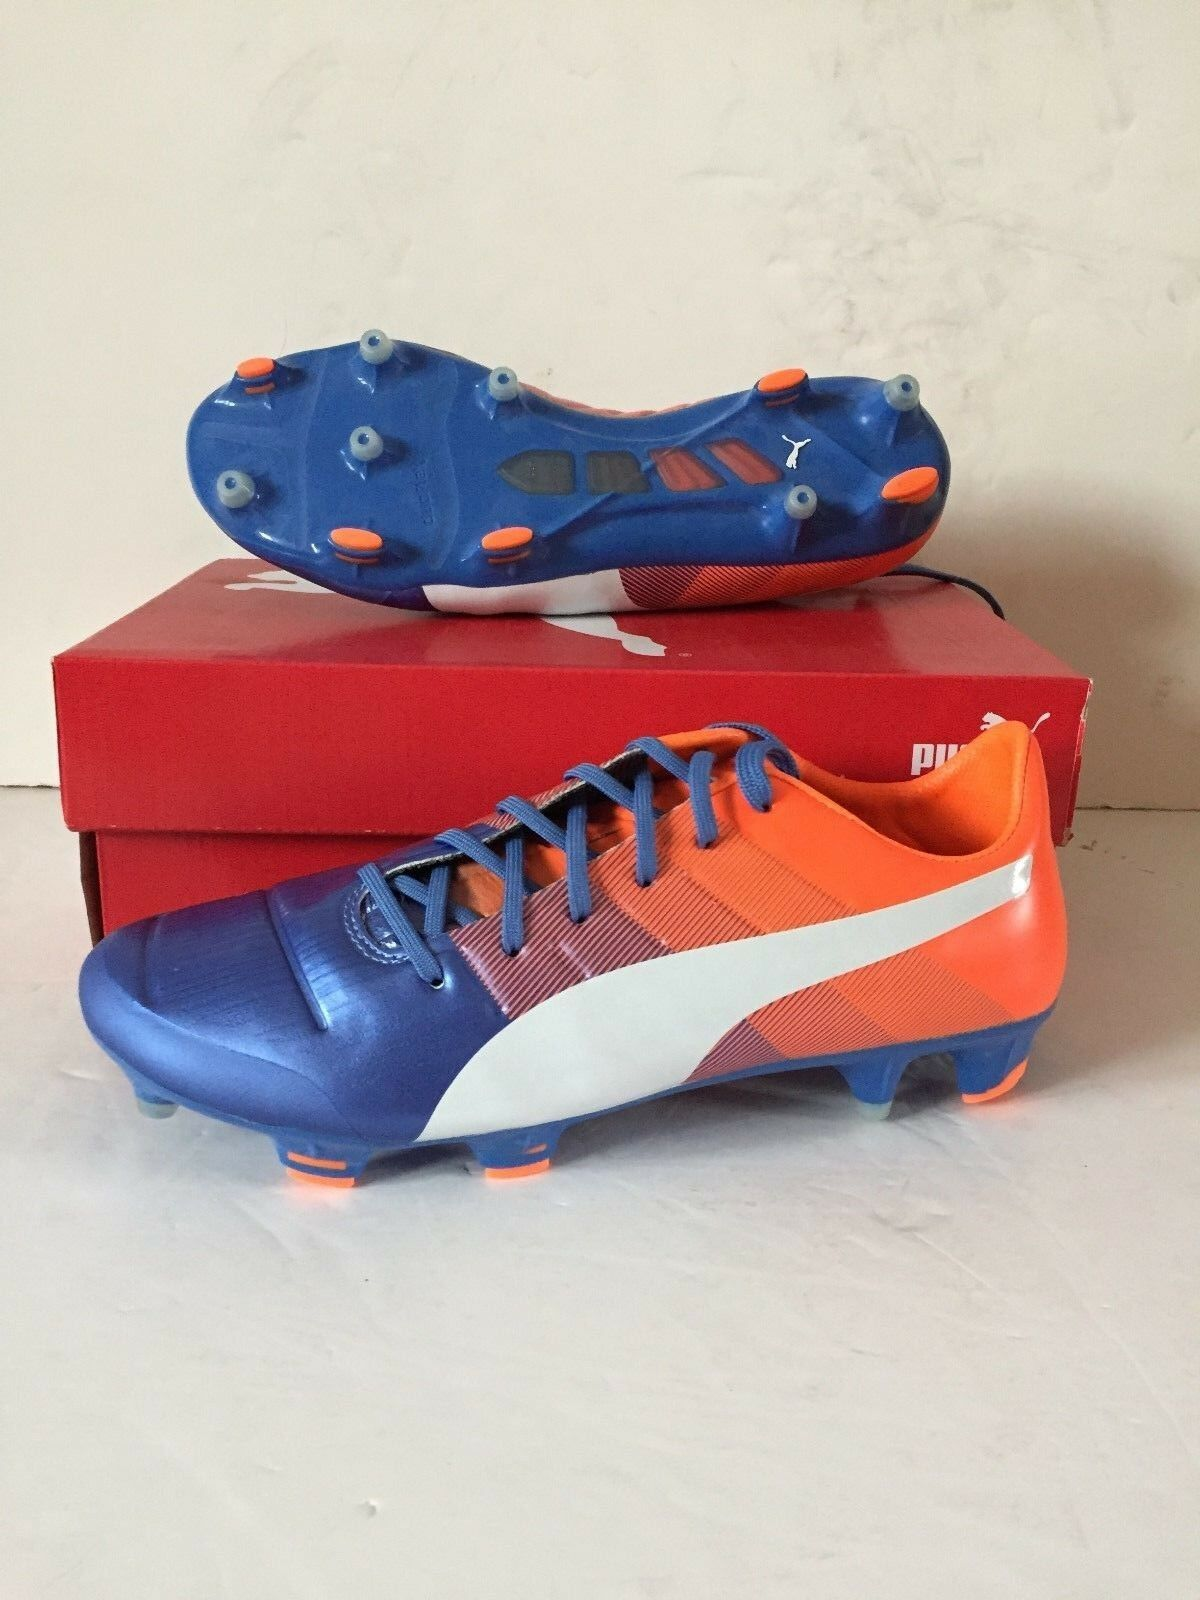 check out 55234 f33c4 Puma Mens 1.3 FG Football Boots - bluee - BNIB evopower pyyjsc9987-Shoes    Cleats